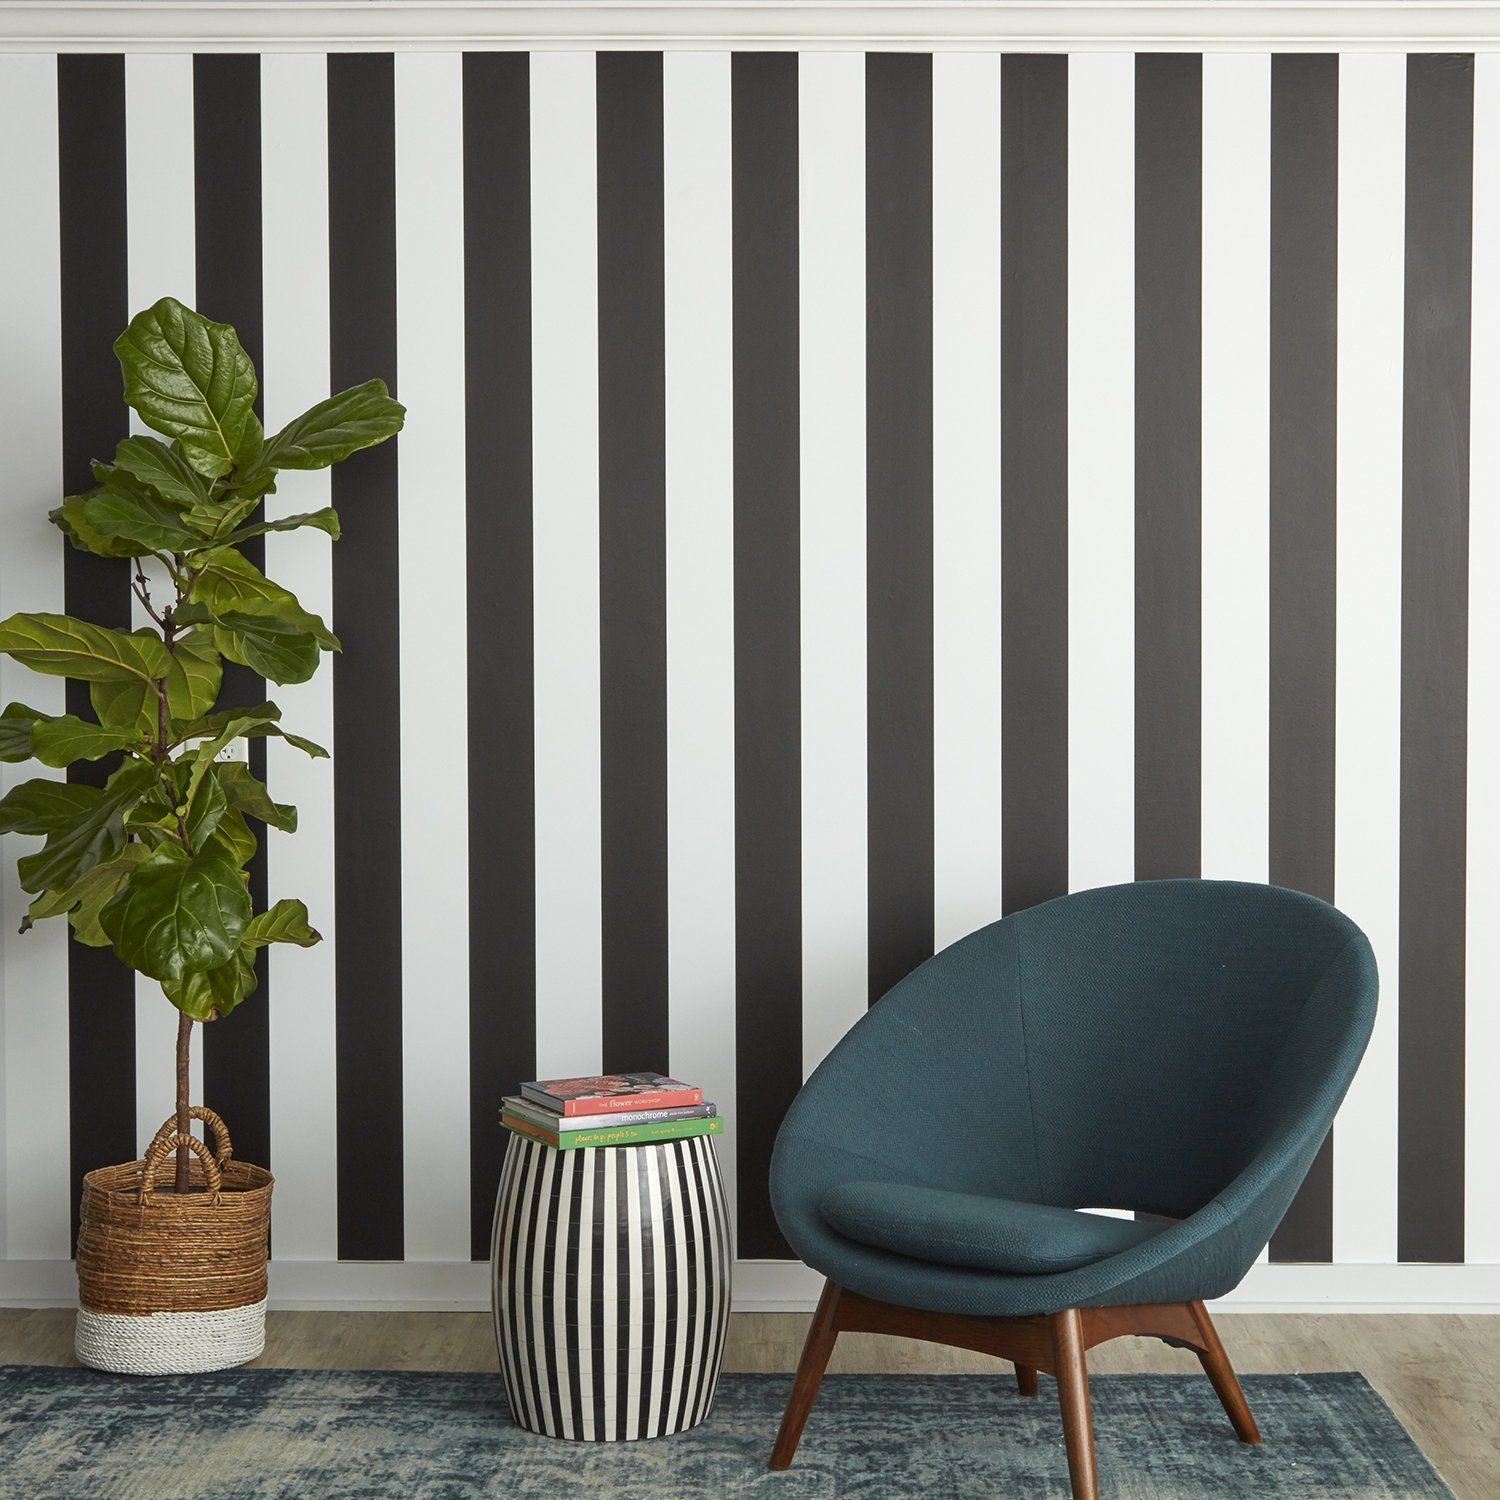 Tempaper St525 Stripe Removable Peel And Stick Wallpaper 20 5 X 33 Black And White Y Striped Wallpaper Black Striped Wallpaper Stripe Removable Wallpaper